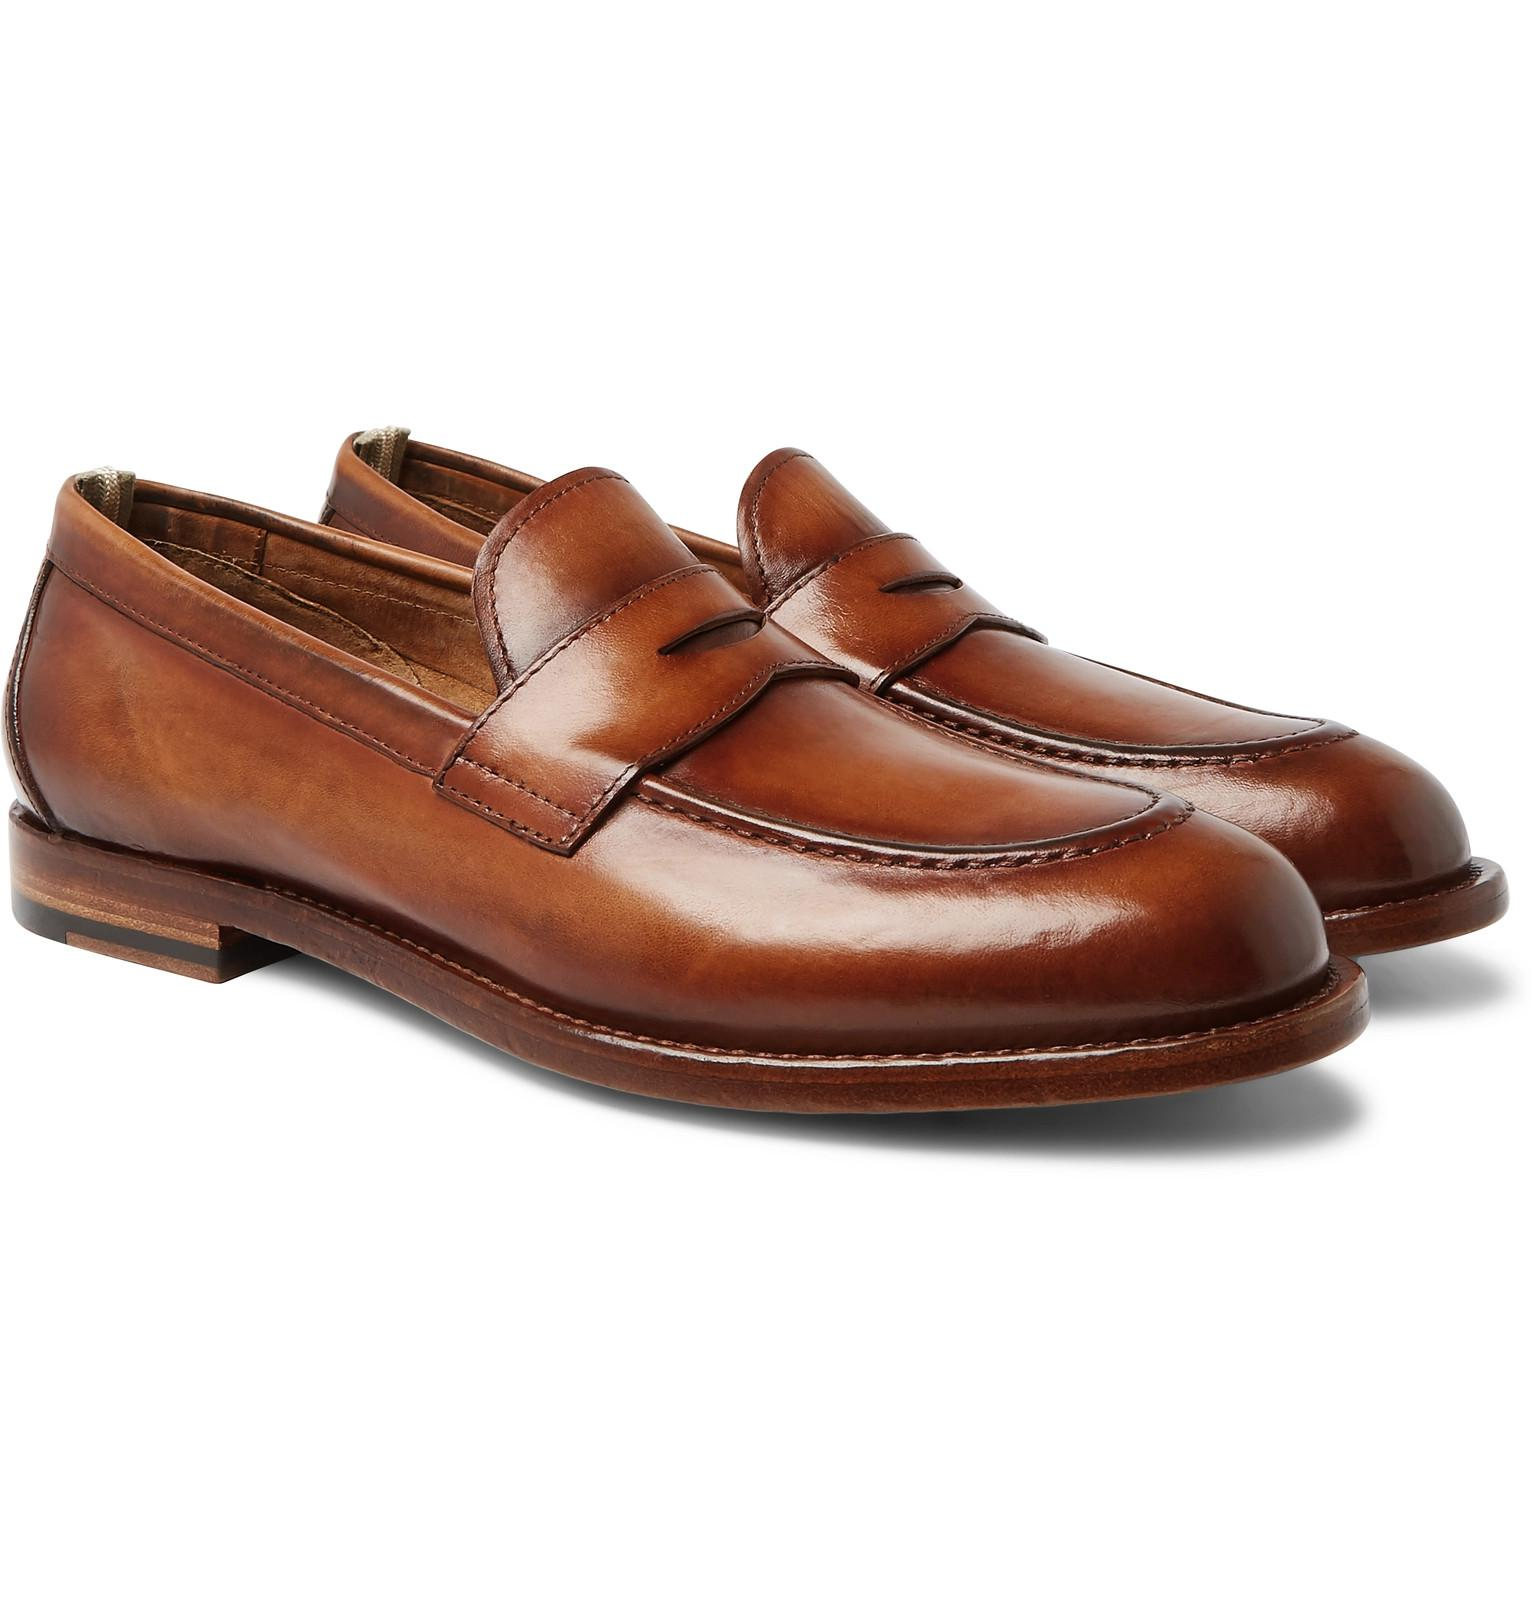 24e5e9eb973 Lyst - Officine Creative Ivy Polished-leather Penny Loafers in Brown ...